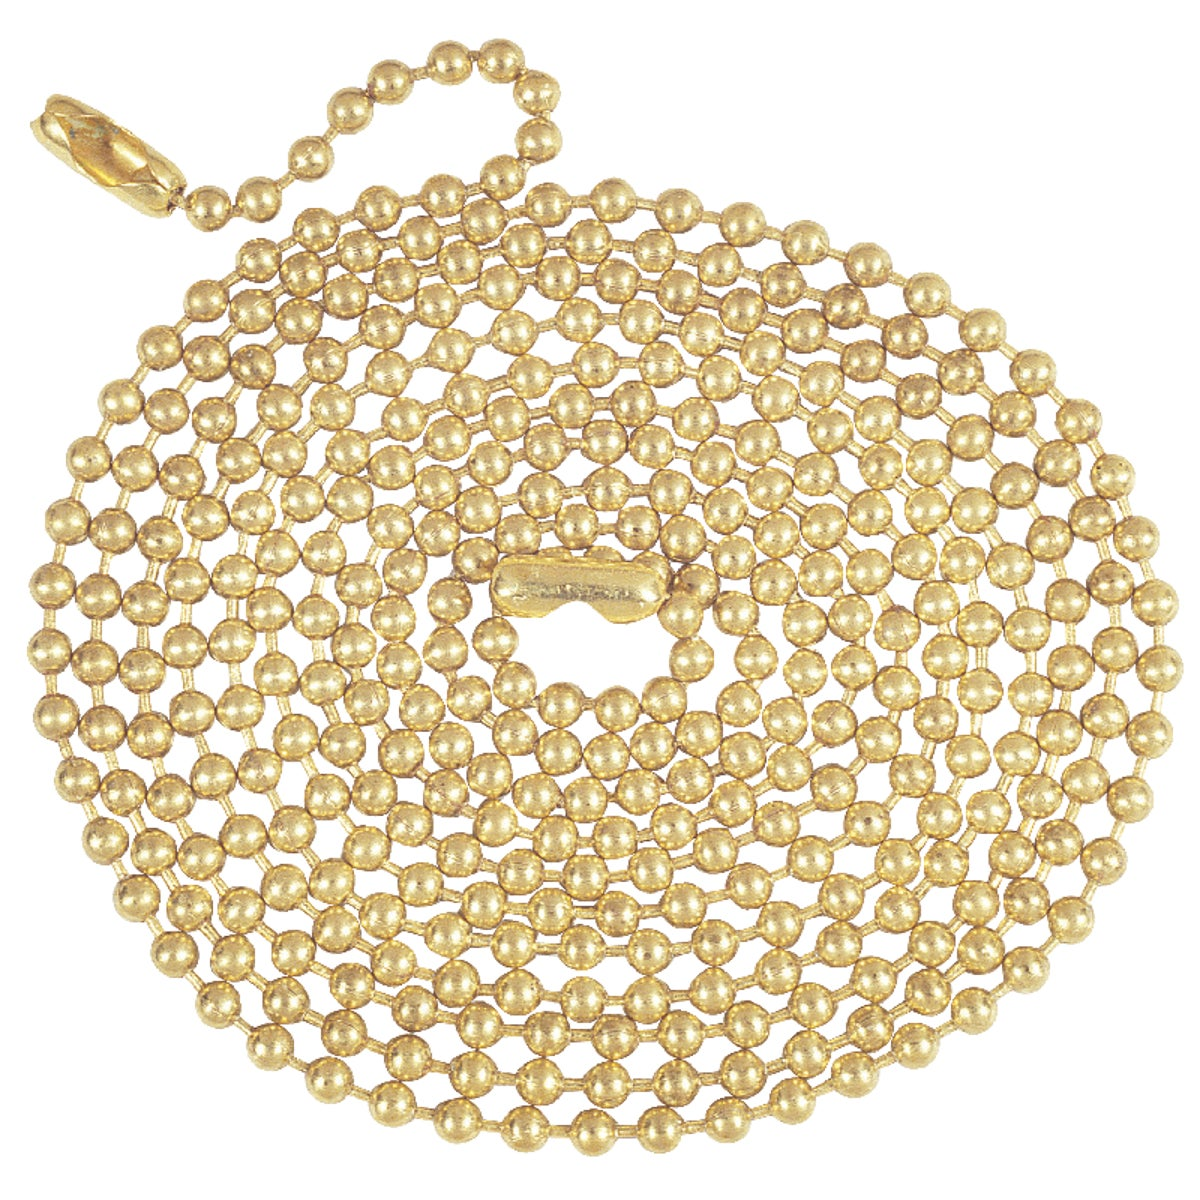 5' BRASS BEADED CHAIN